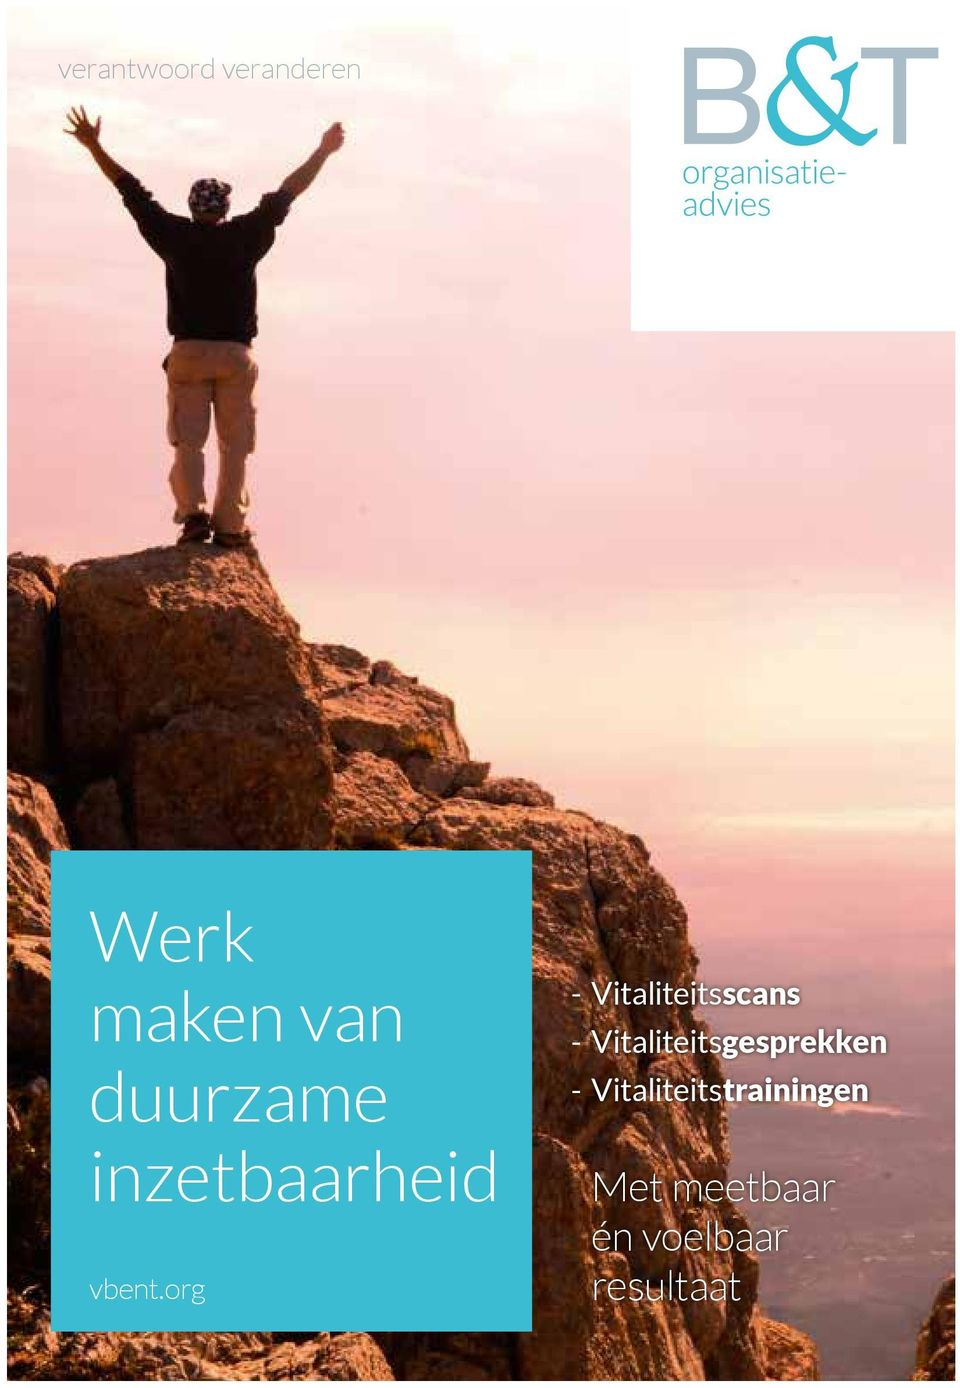 org - Vitaliteitsscans -